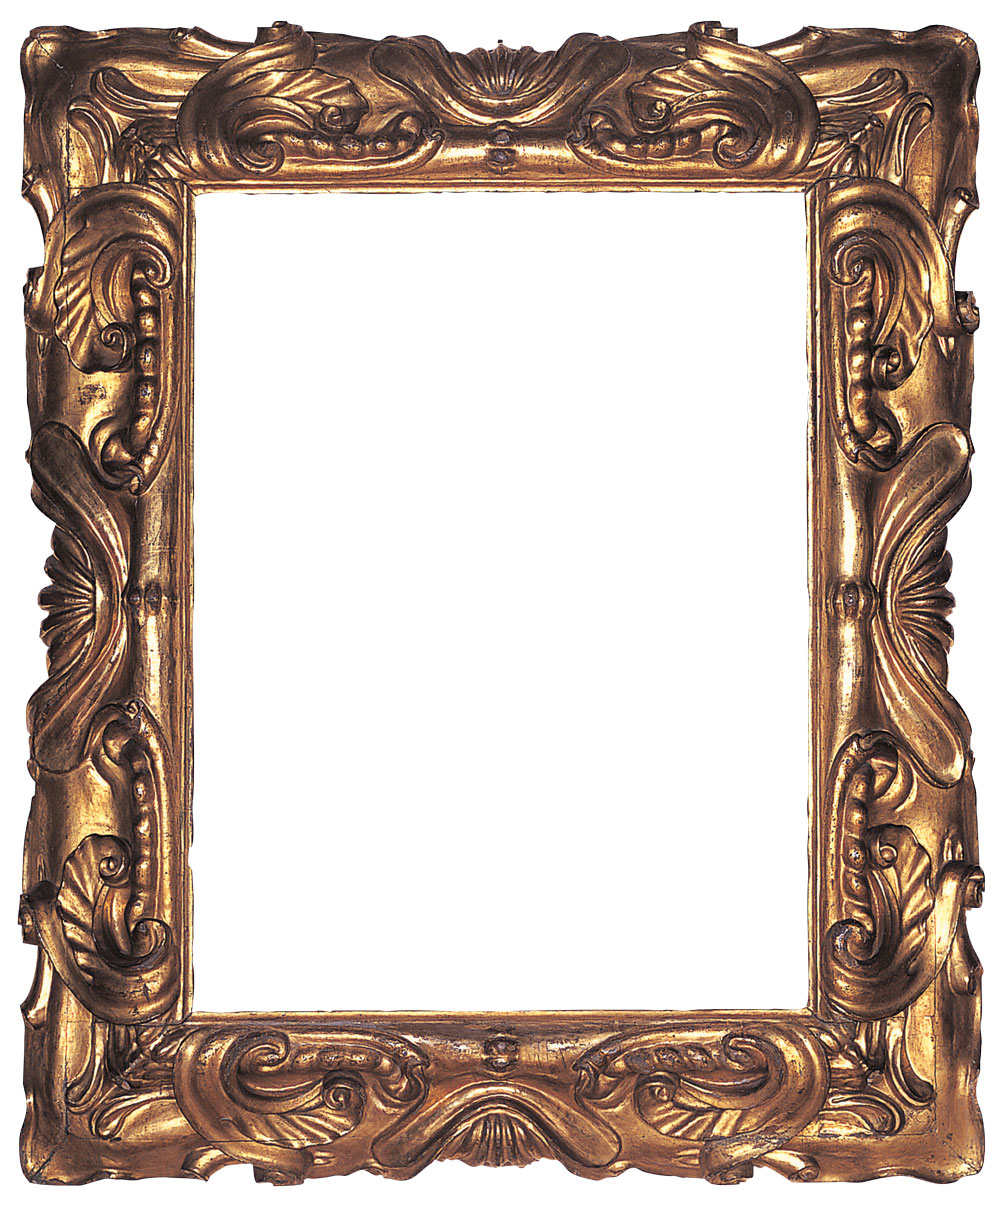 Charming Antique Picture Frames Part - 1: 1: Carved And Gilt Mannerist Frame Of Reverse Profile In The Auricular  Style With Stylized Shell Motifs At Centers Surrounded By Deeply Sculpted  Scrolls And ...